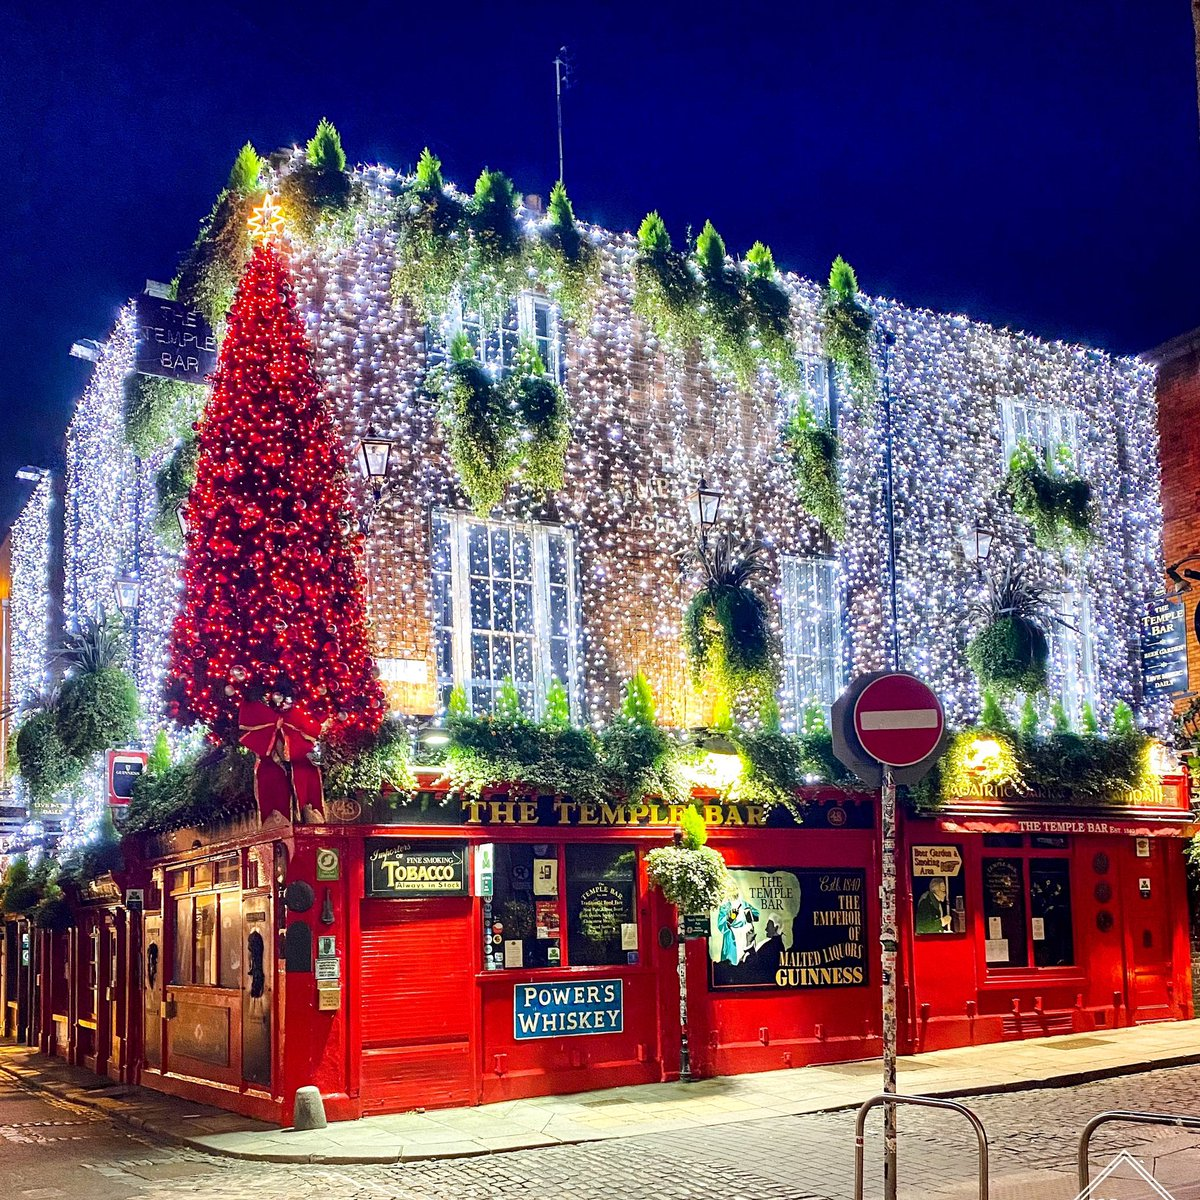 Nothing gets us in the Christmas spirit like a pint of Guinness in @TheTempleBarPub. We can't wait to pop in and visit these guys #KEEPTHELIGHTSON